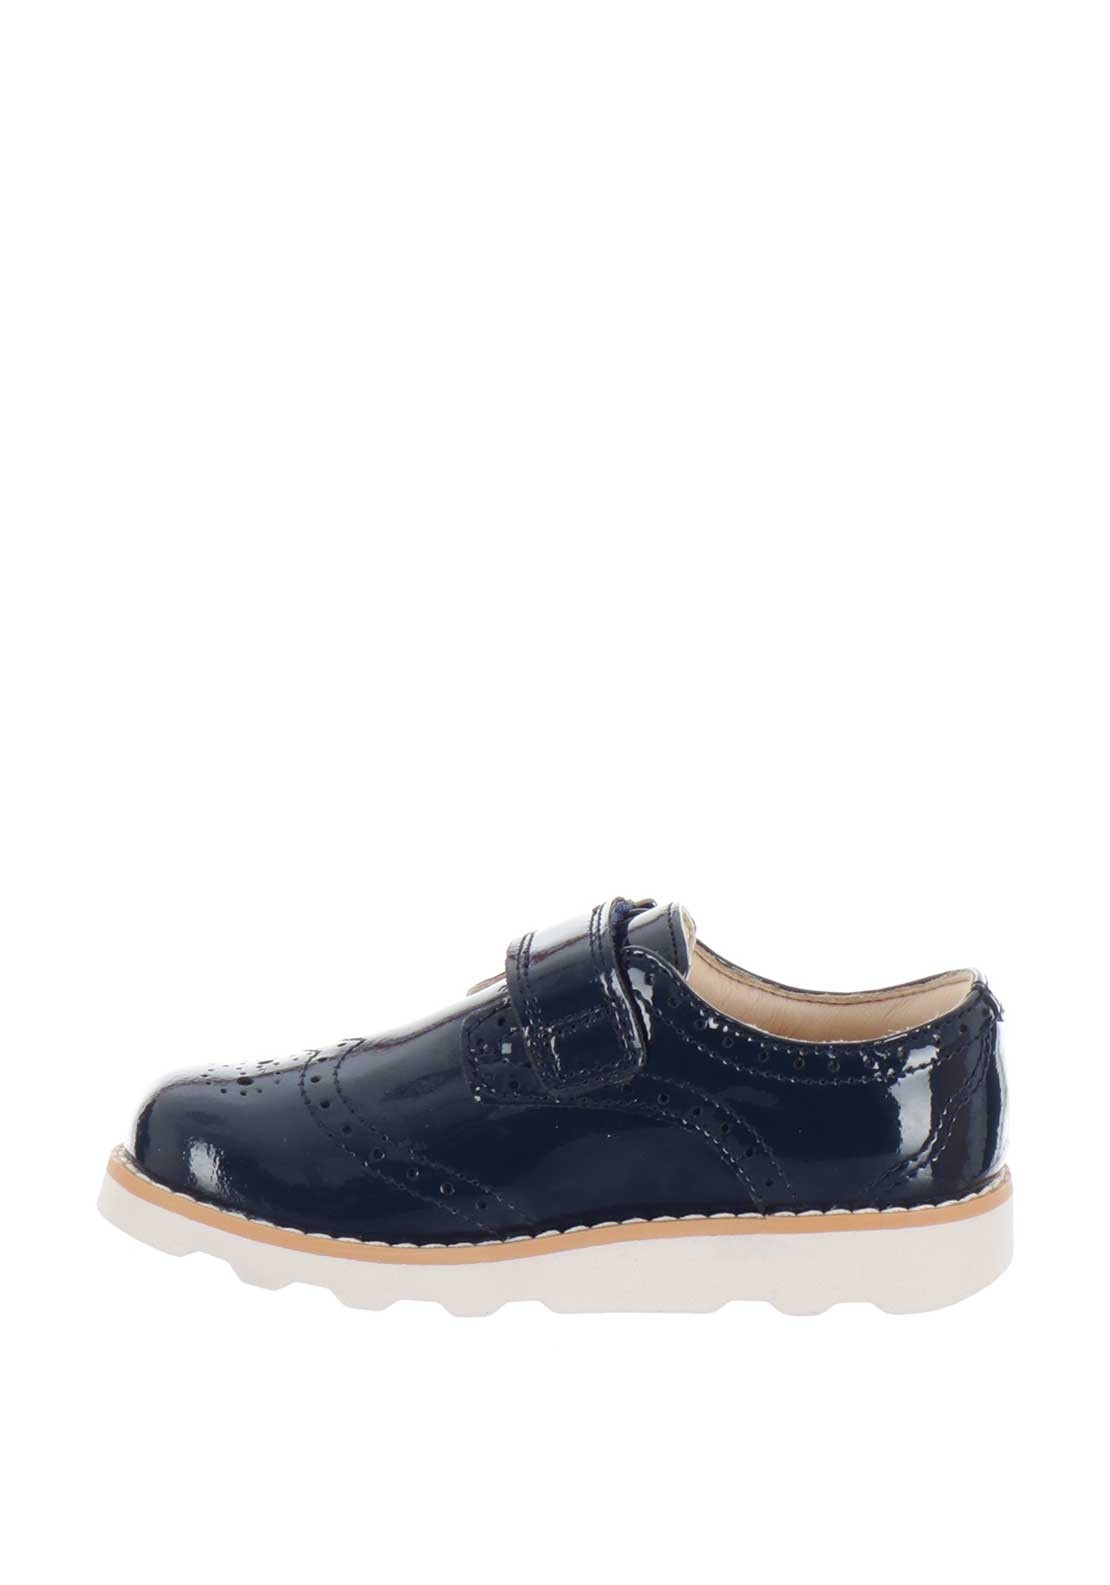 eef588893b6 Clarks Girls Crown Pride Patent Leather Shoes